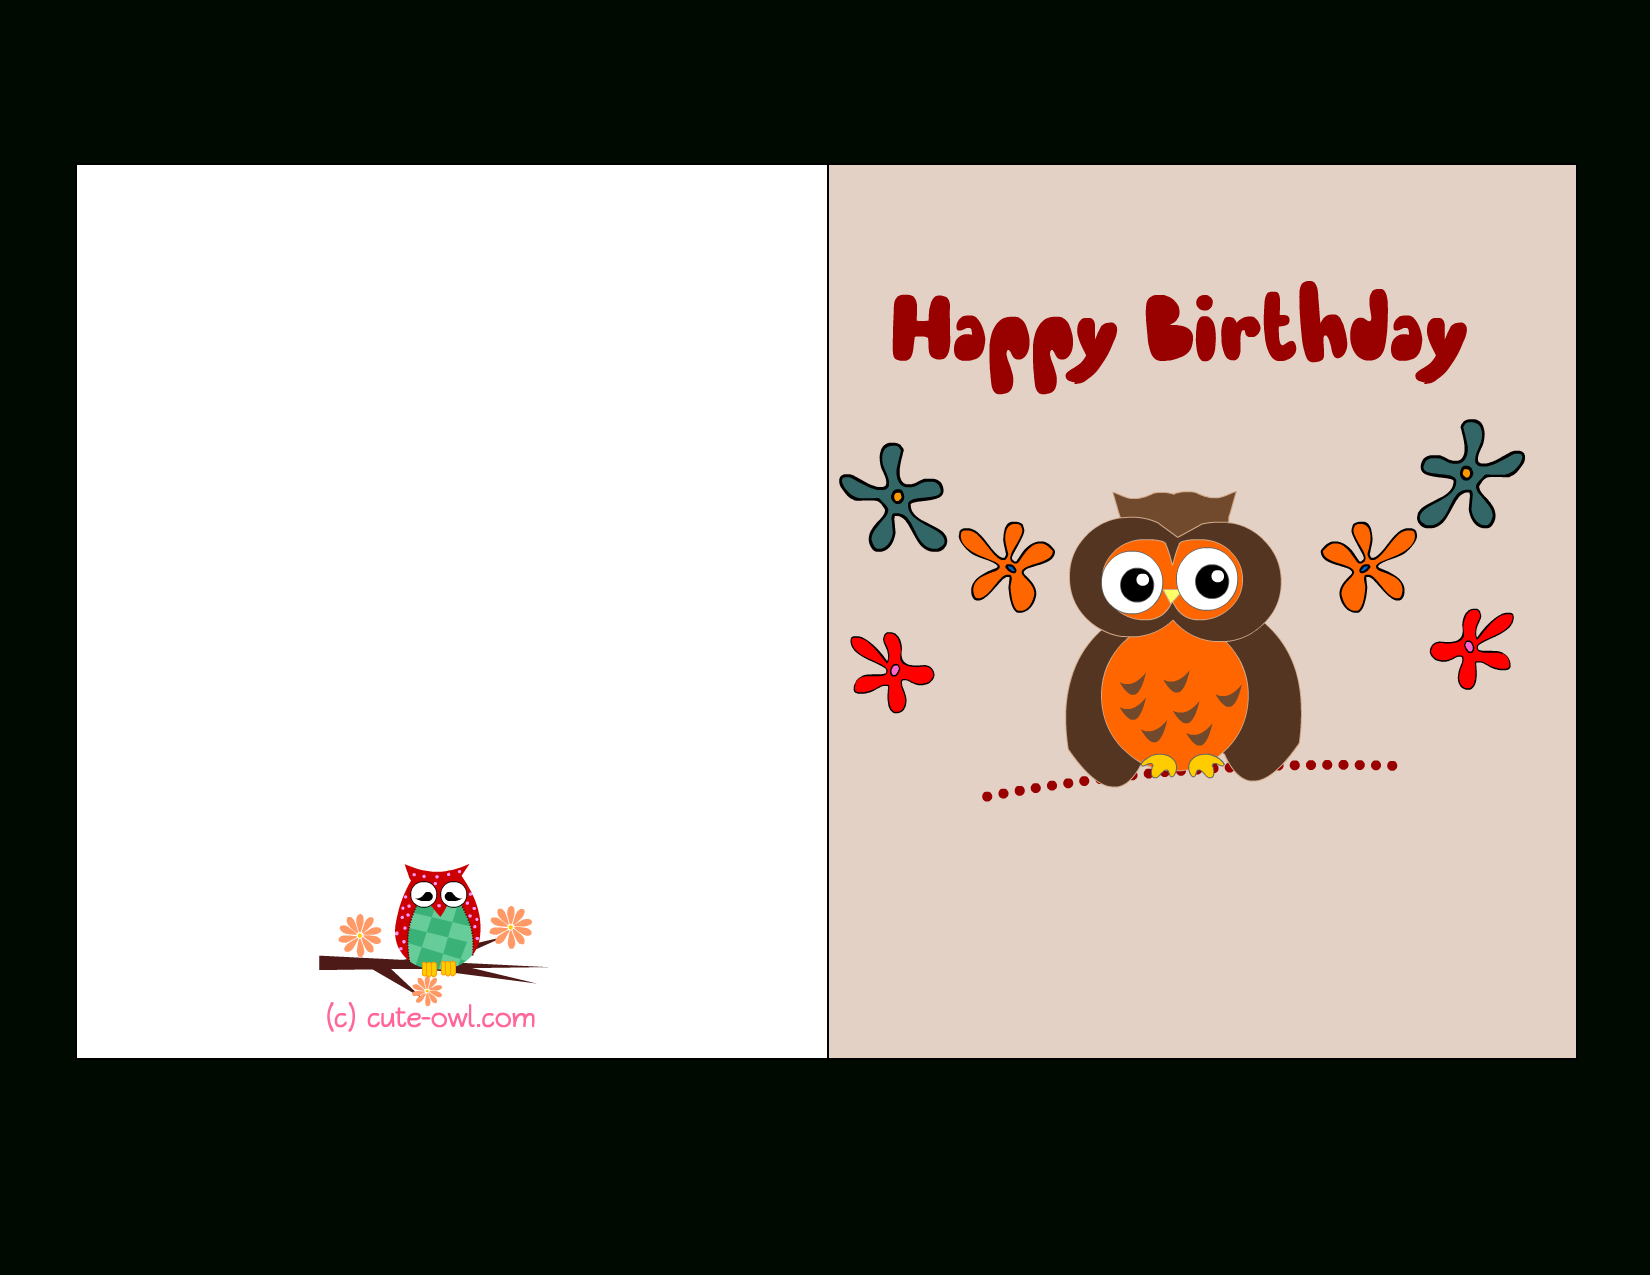 Birthday Card For Printable - Tutlin.psstech.co - Free Online Printable Birthday Cards